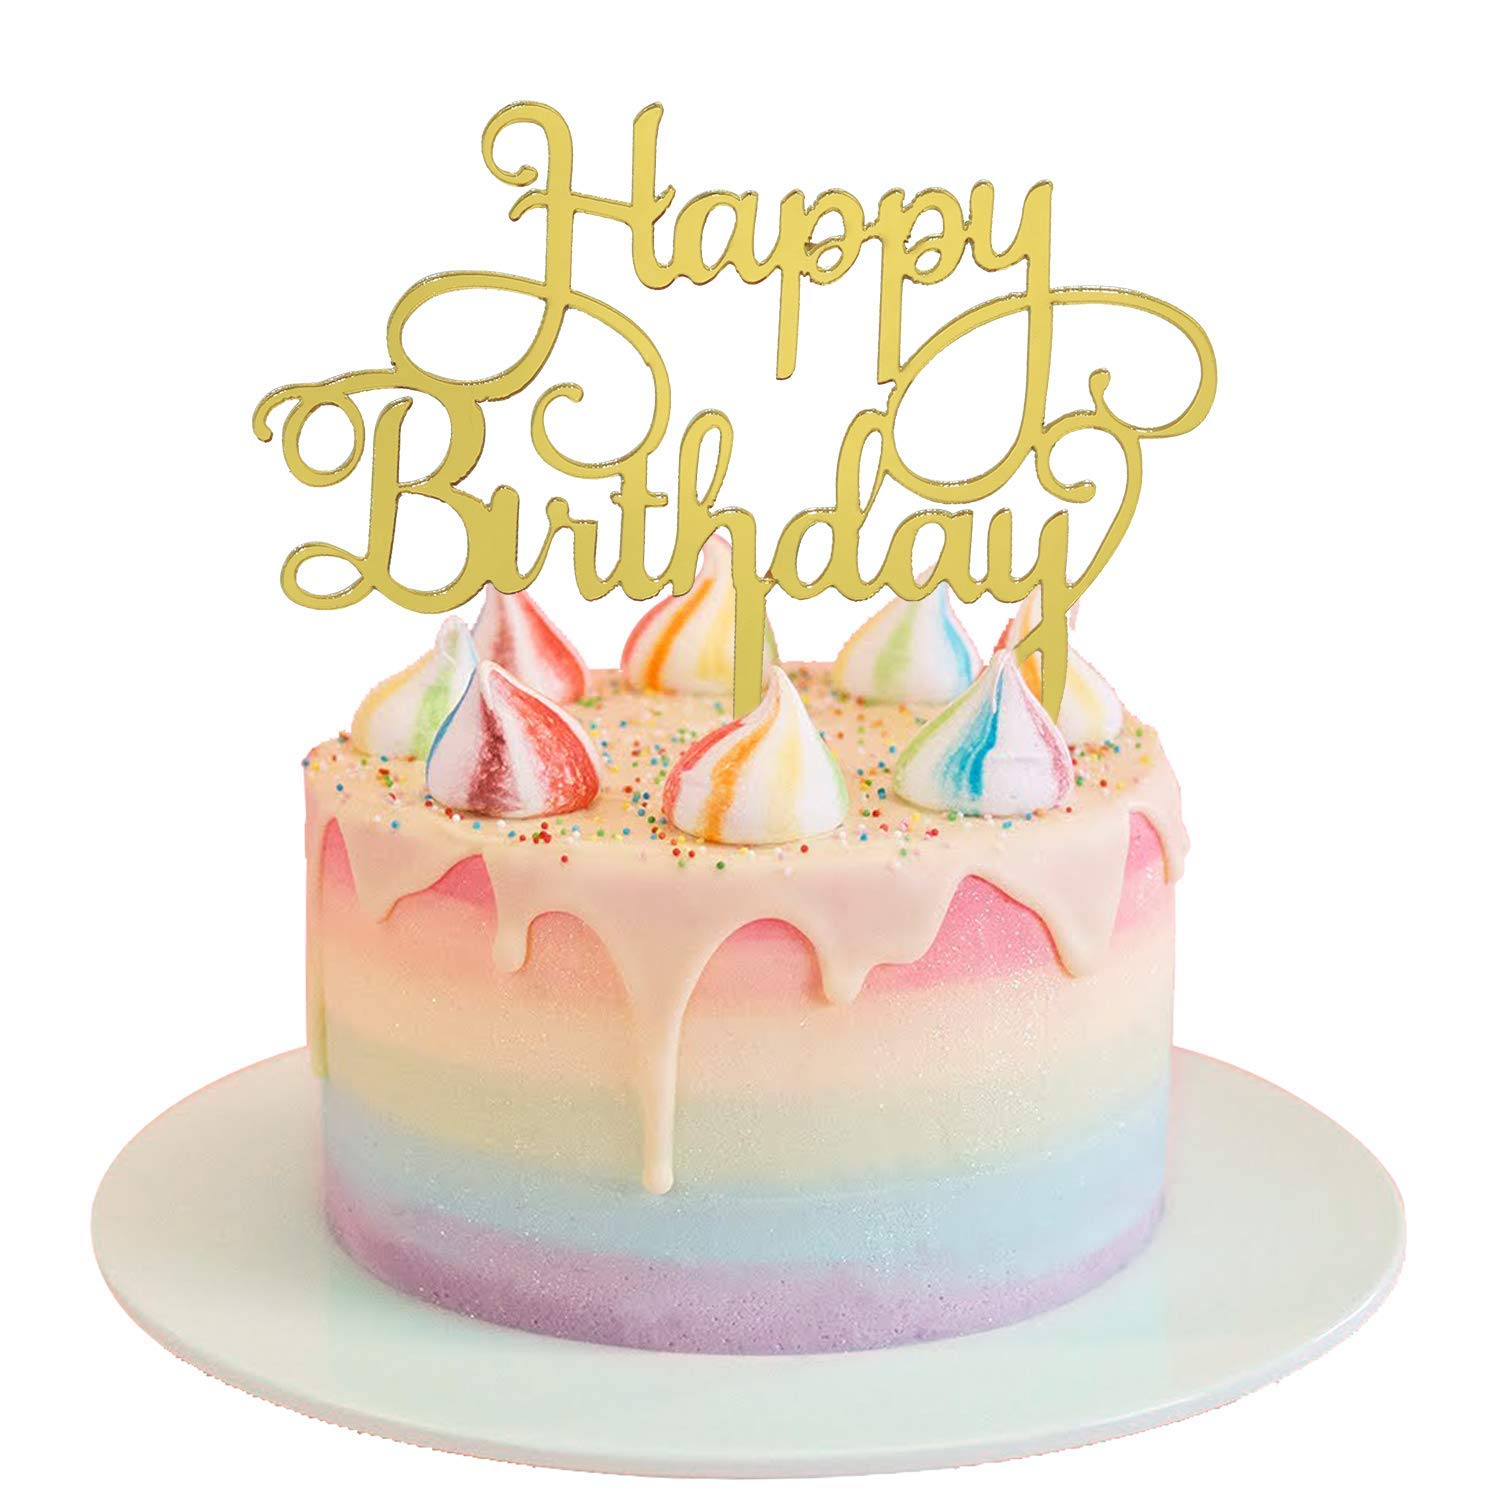 Terrific Acrylic Happy Birthday Cake Topper Acrylic Cake Topper Wholesale Personalised Birthday Cards Veneteletsinfo